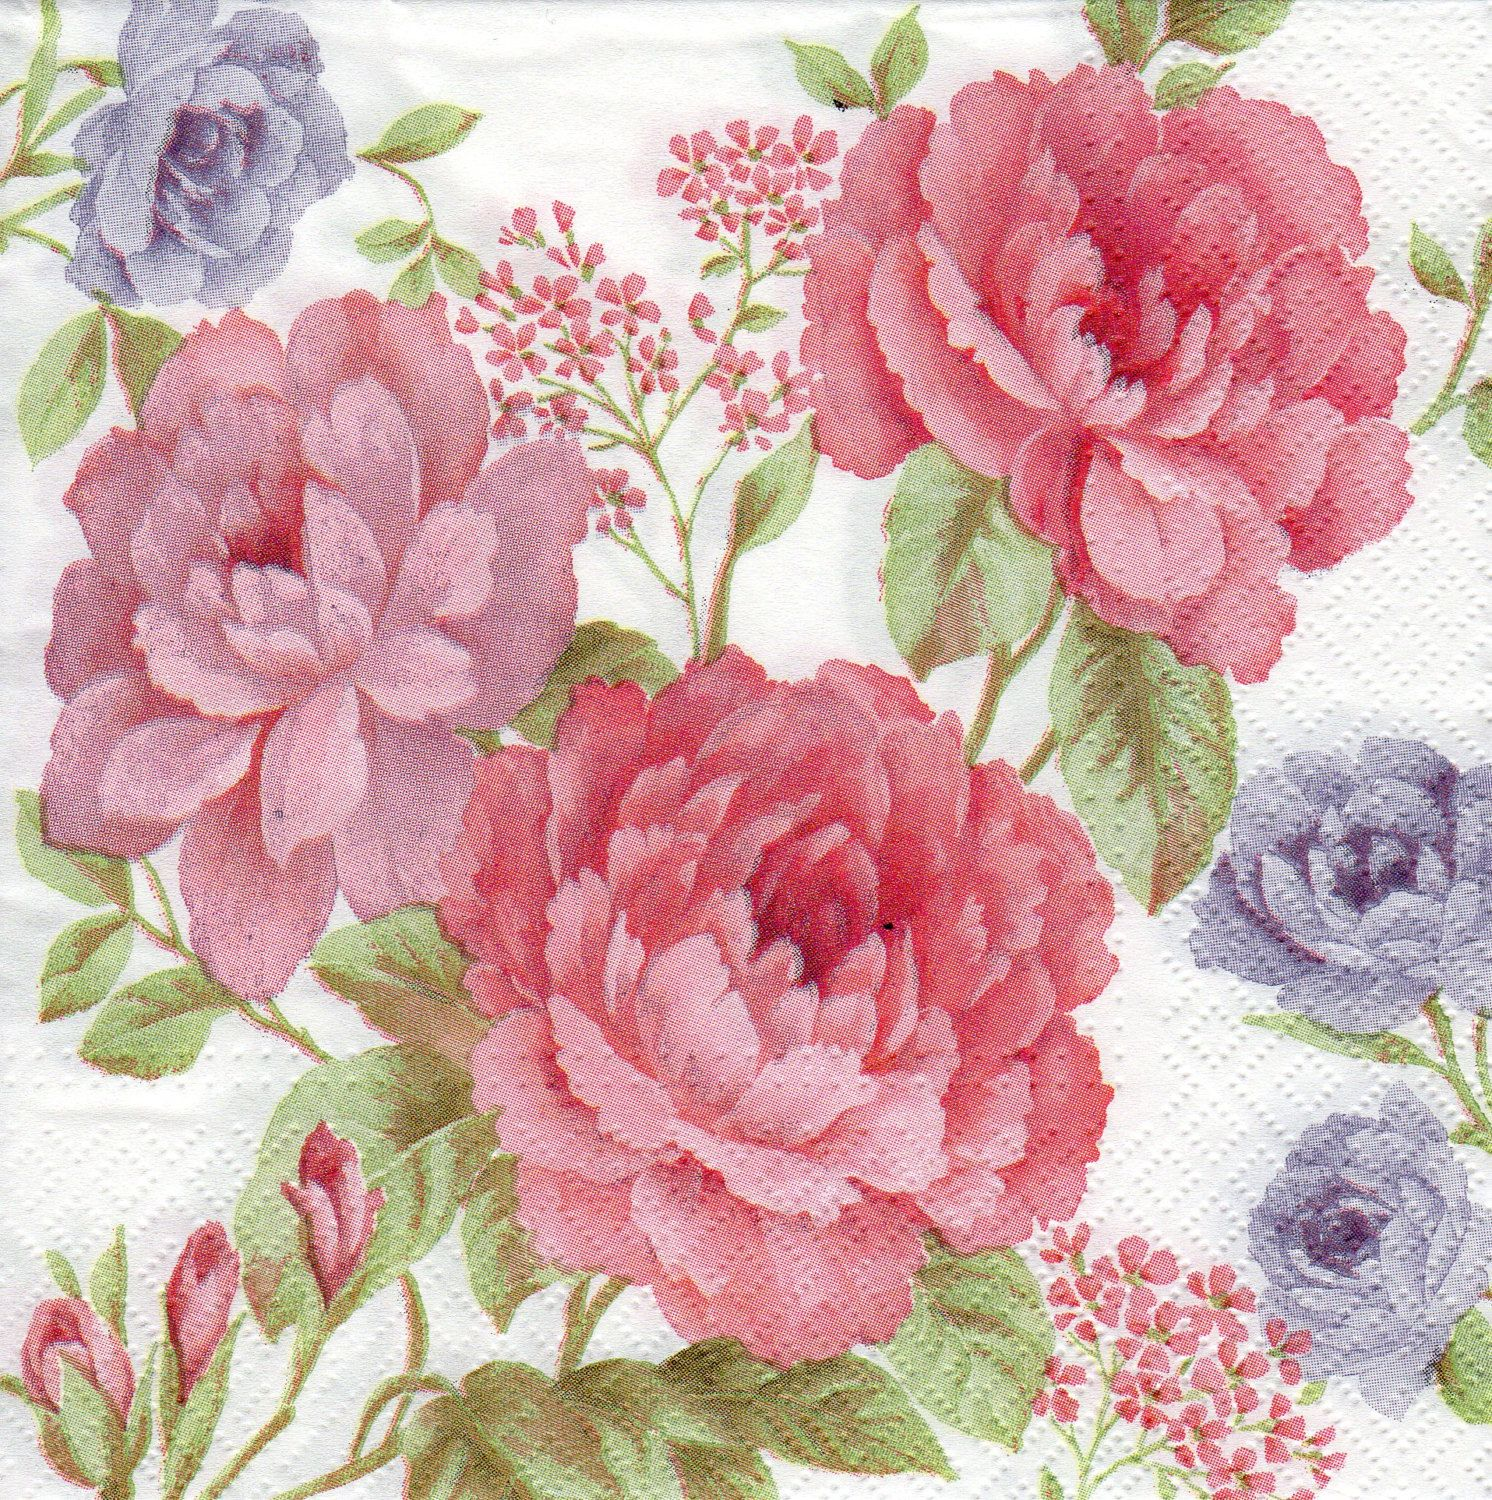 4 x Single Paper Napkins Decoupage Crafting and Table Tulip Flowers 13